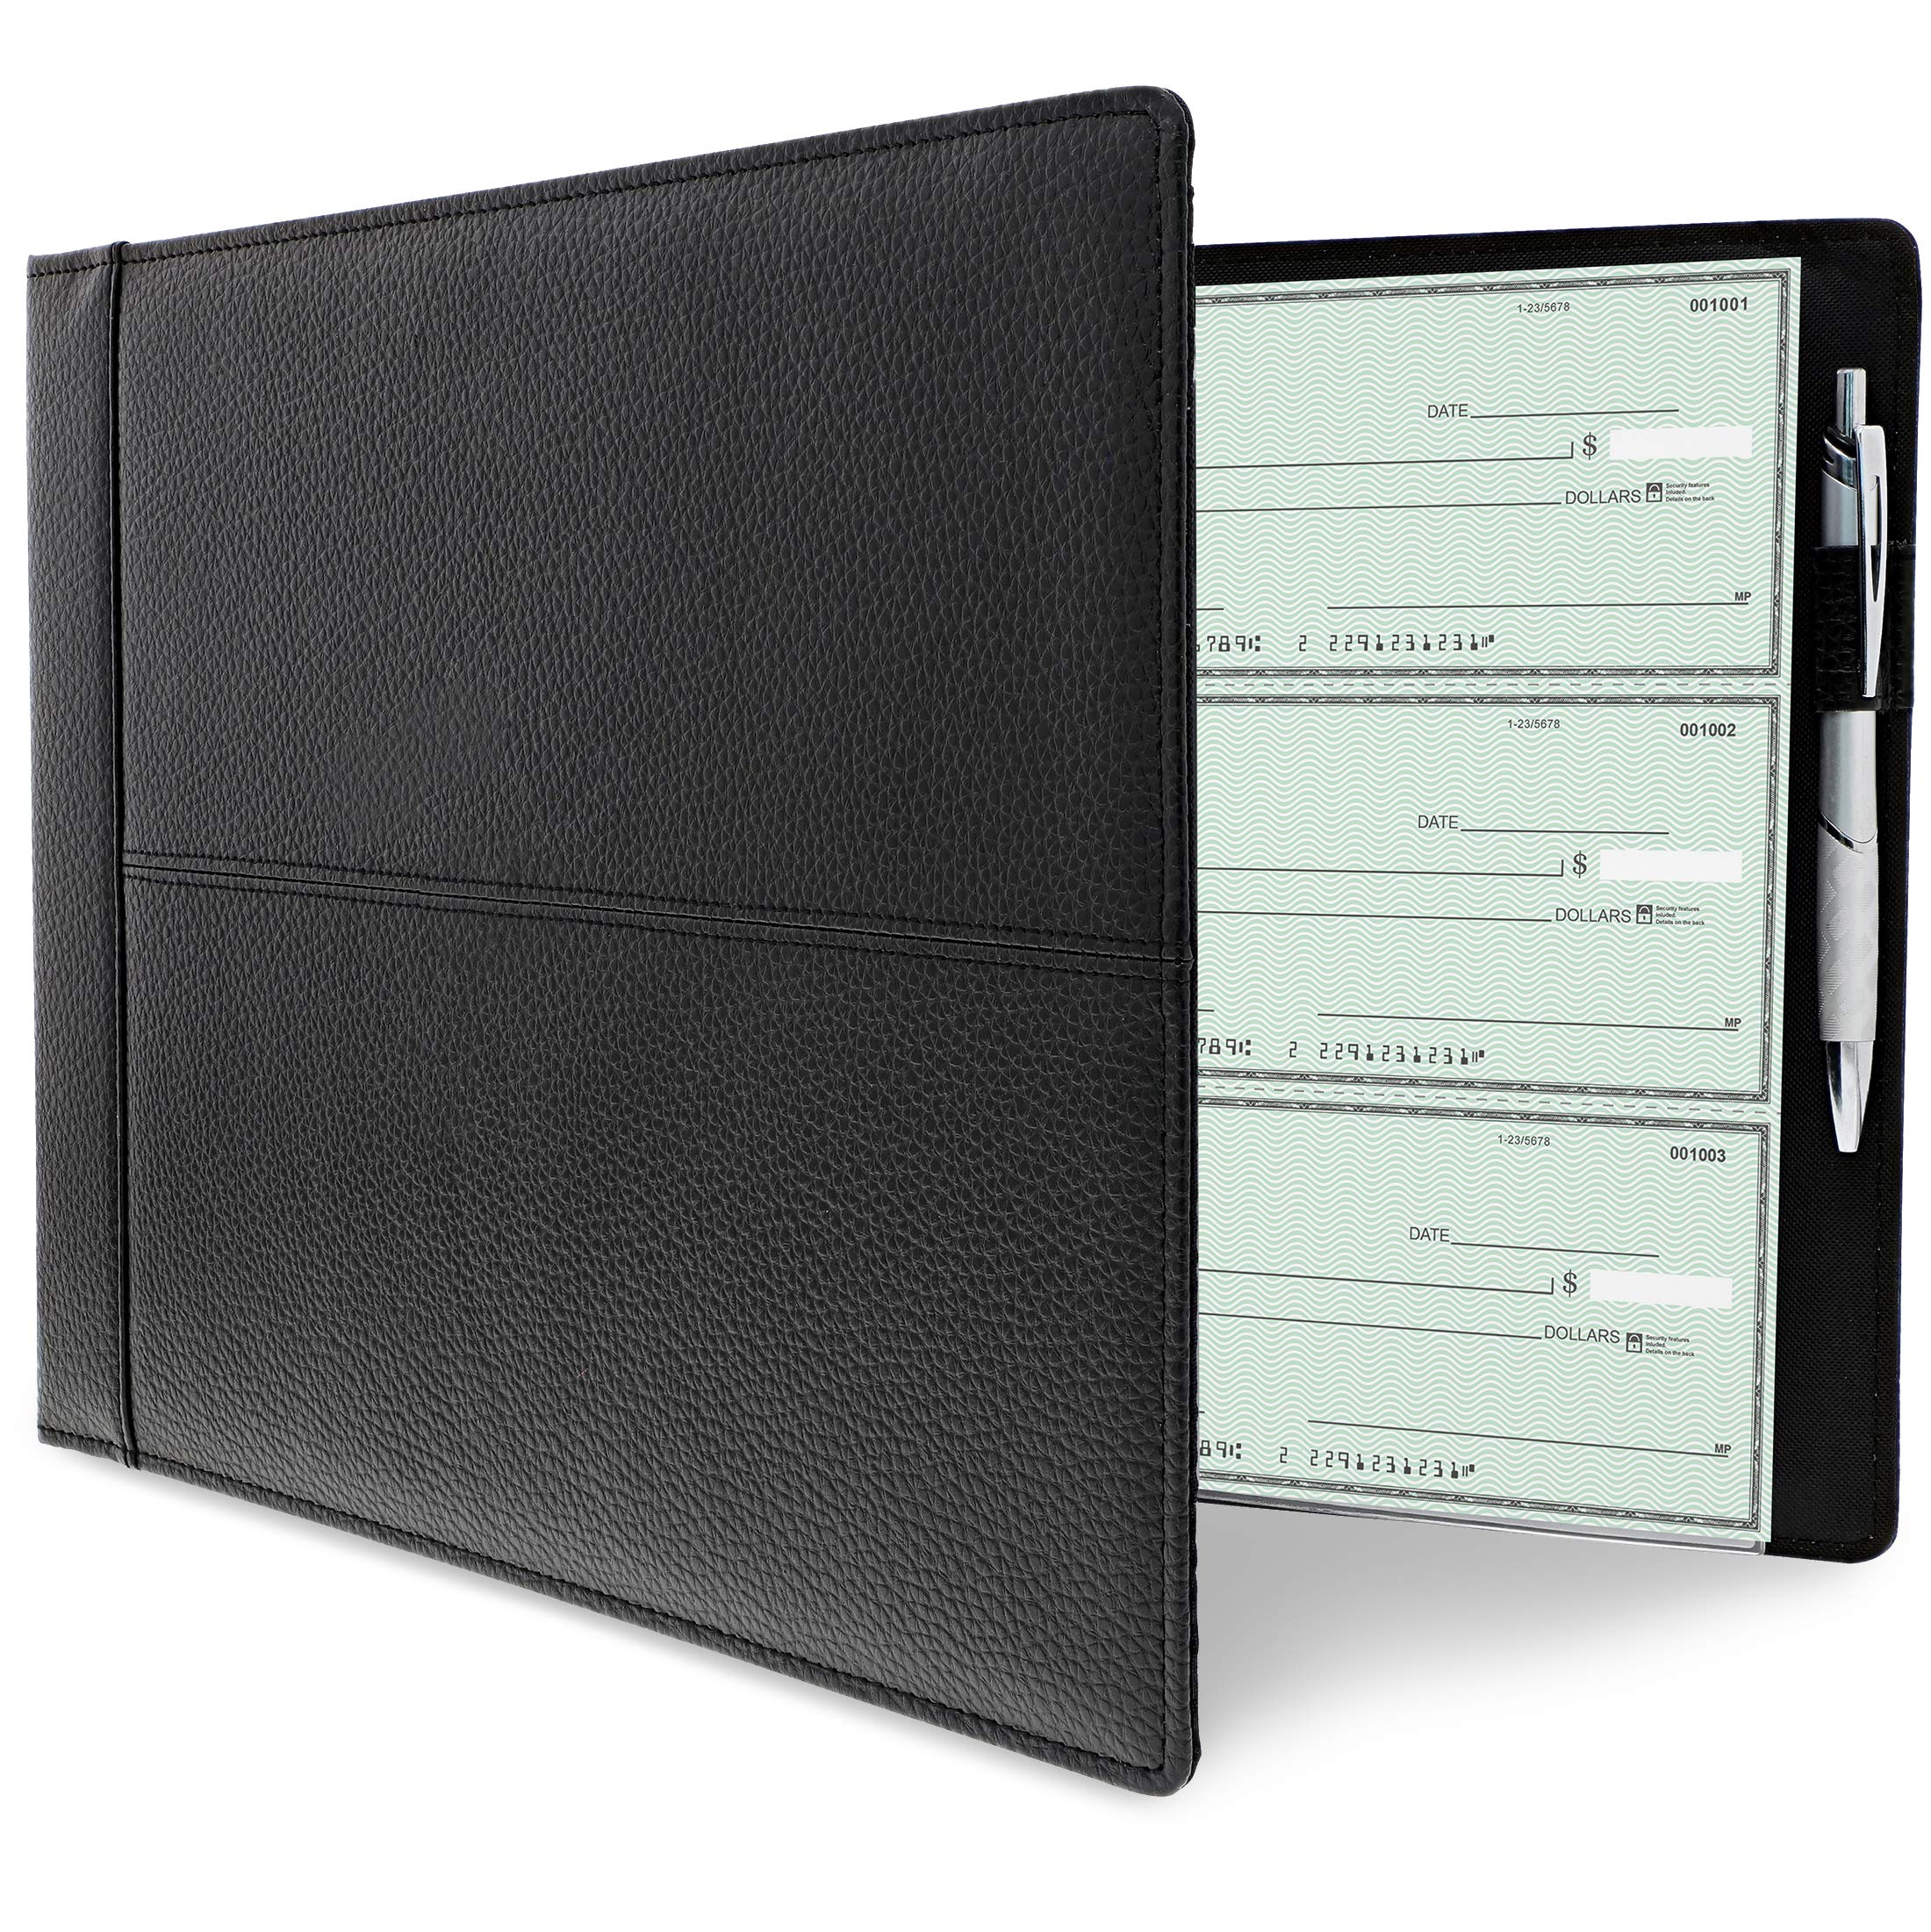 Juvale 7 Ring Business Check Binder, Holds 600 Checks, 3 on a Page, 14 x 2 x 10 Inches by Juvale